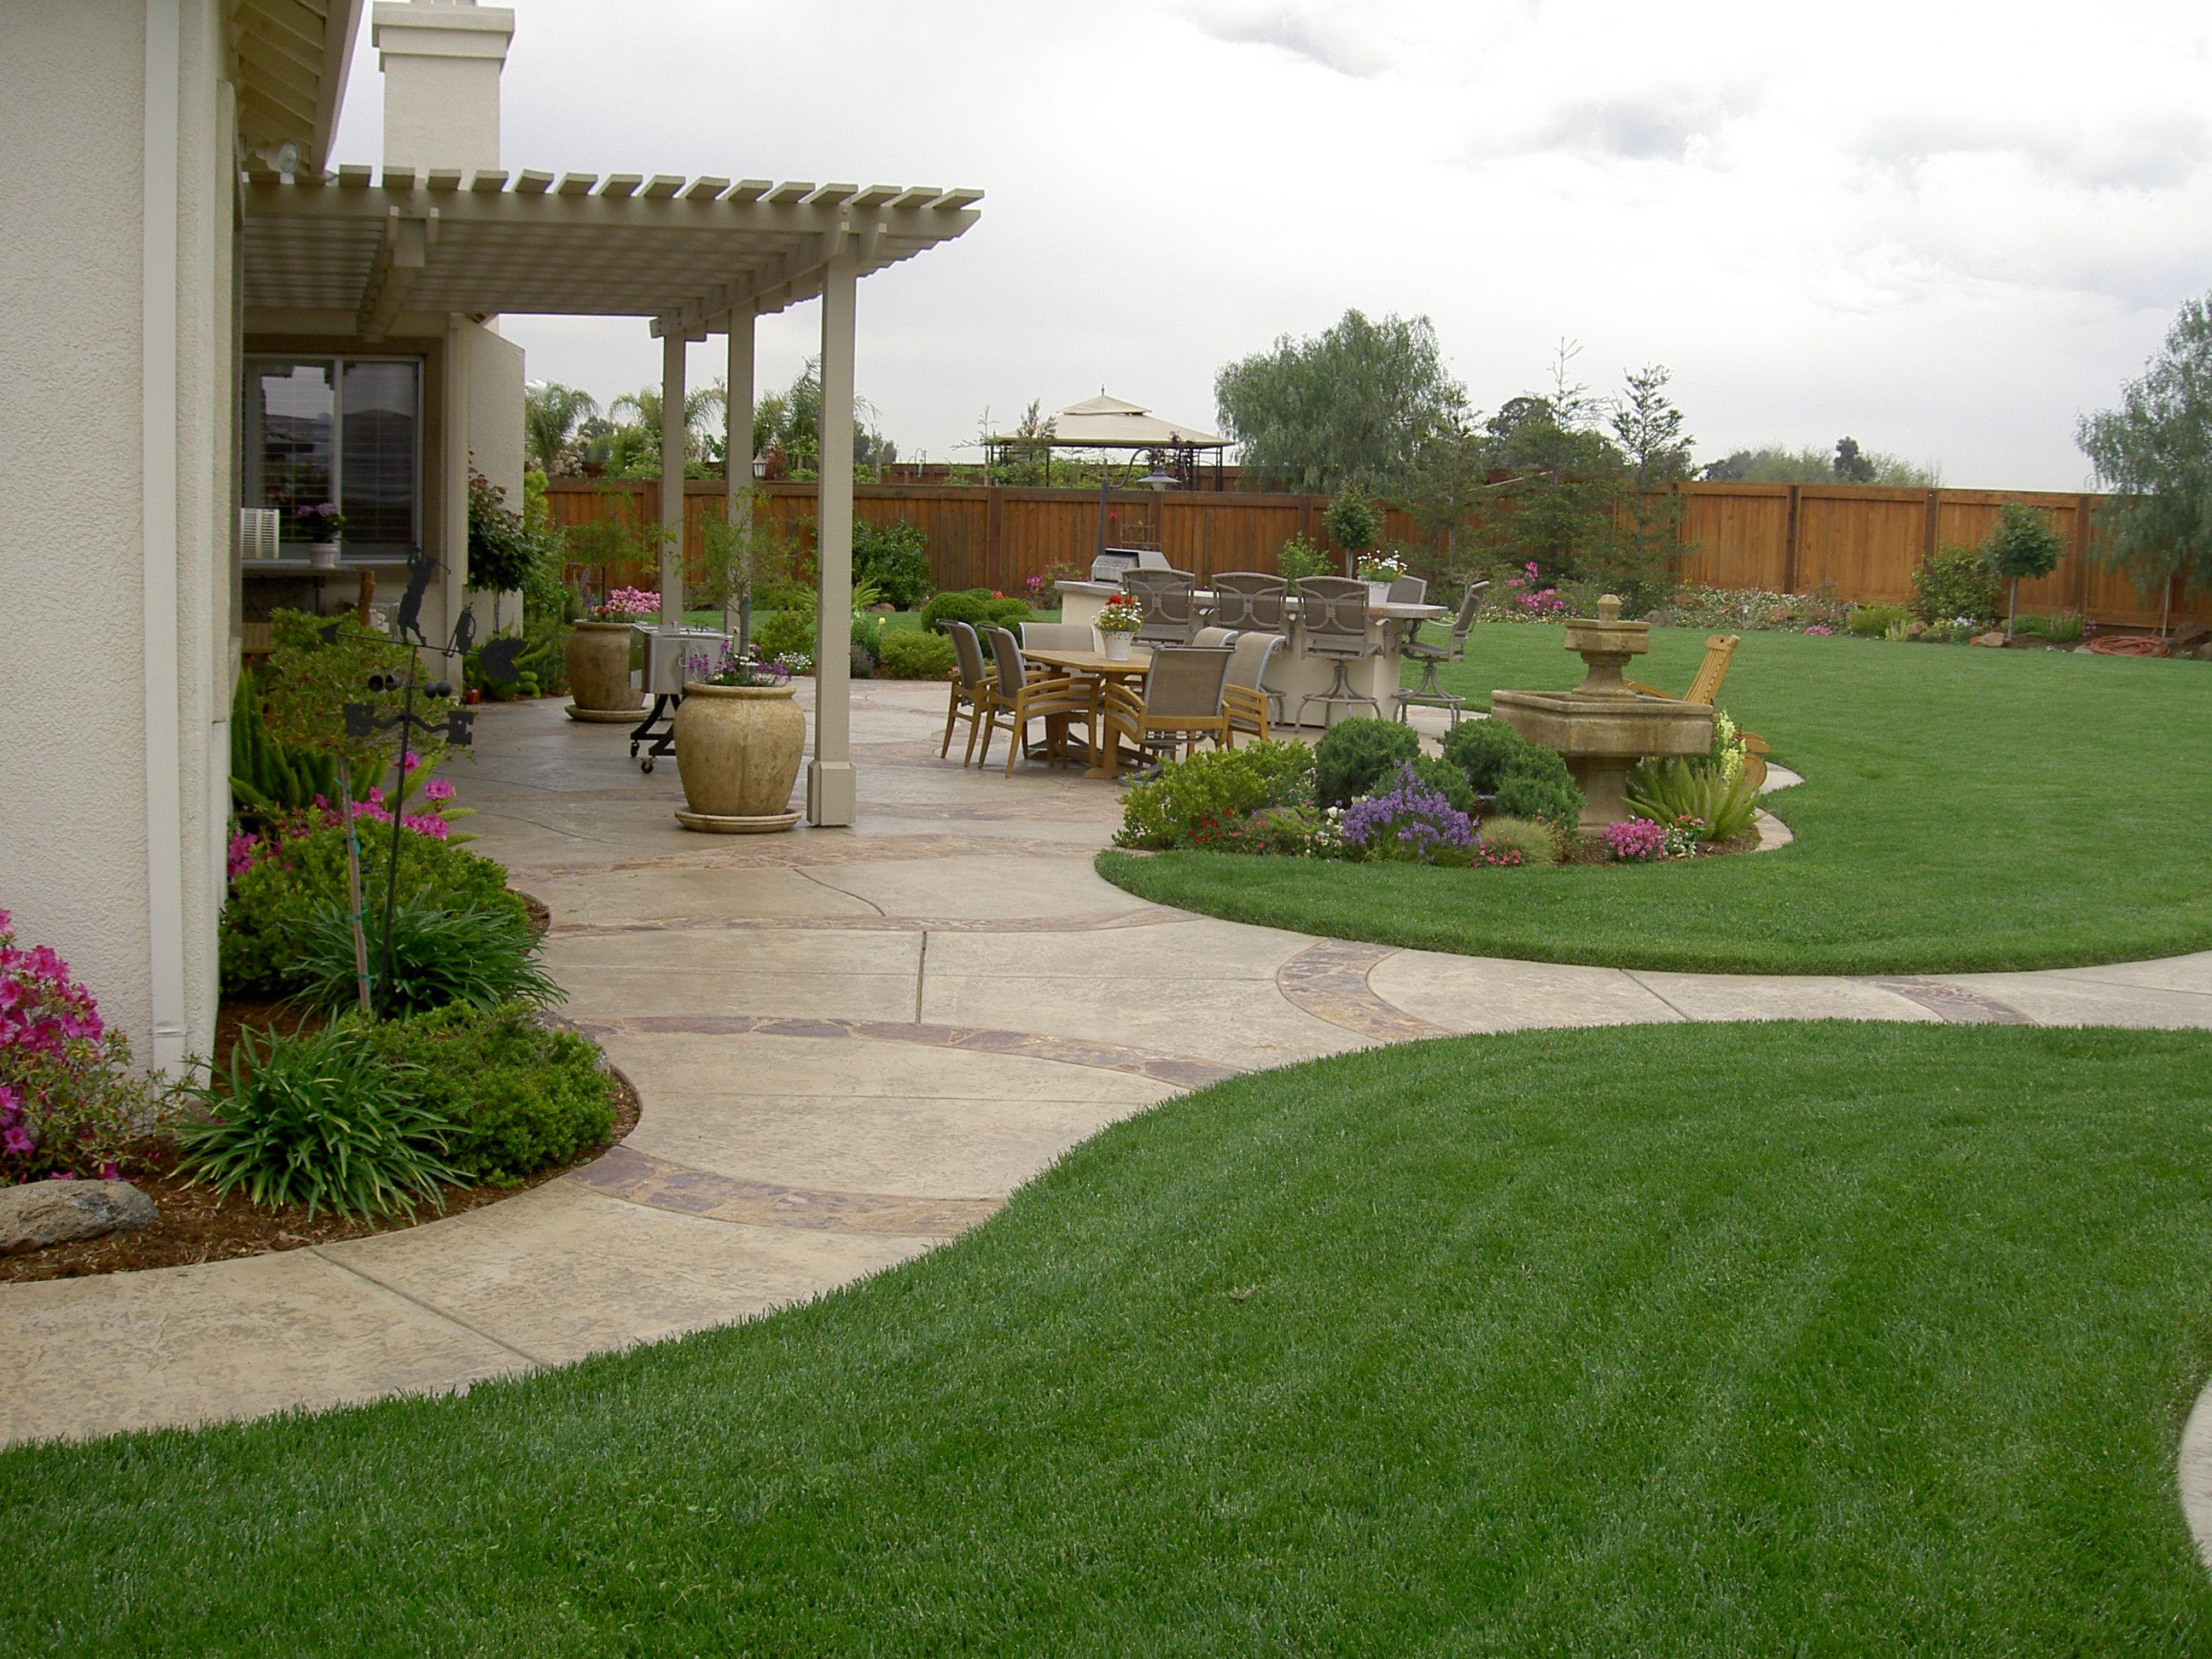 12 Great Ideas For A Modest Backyard: The Various Backyard Design Ideas As The Inspiration Of